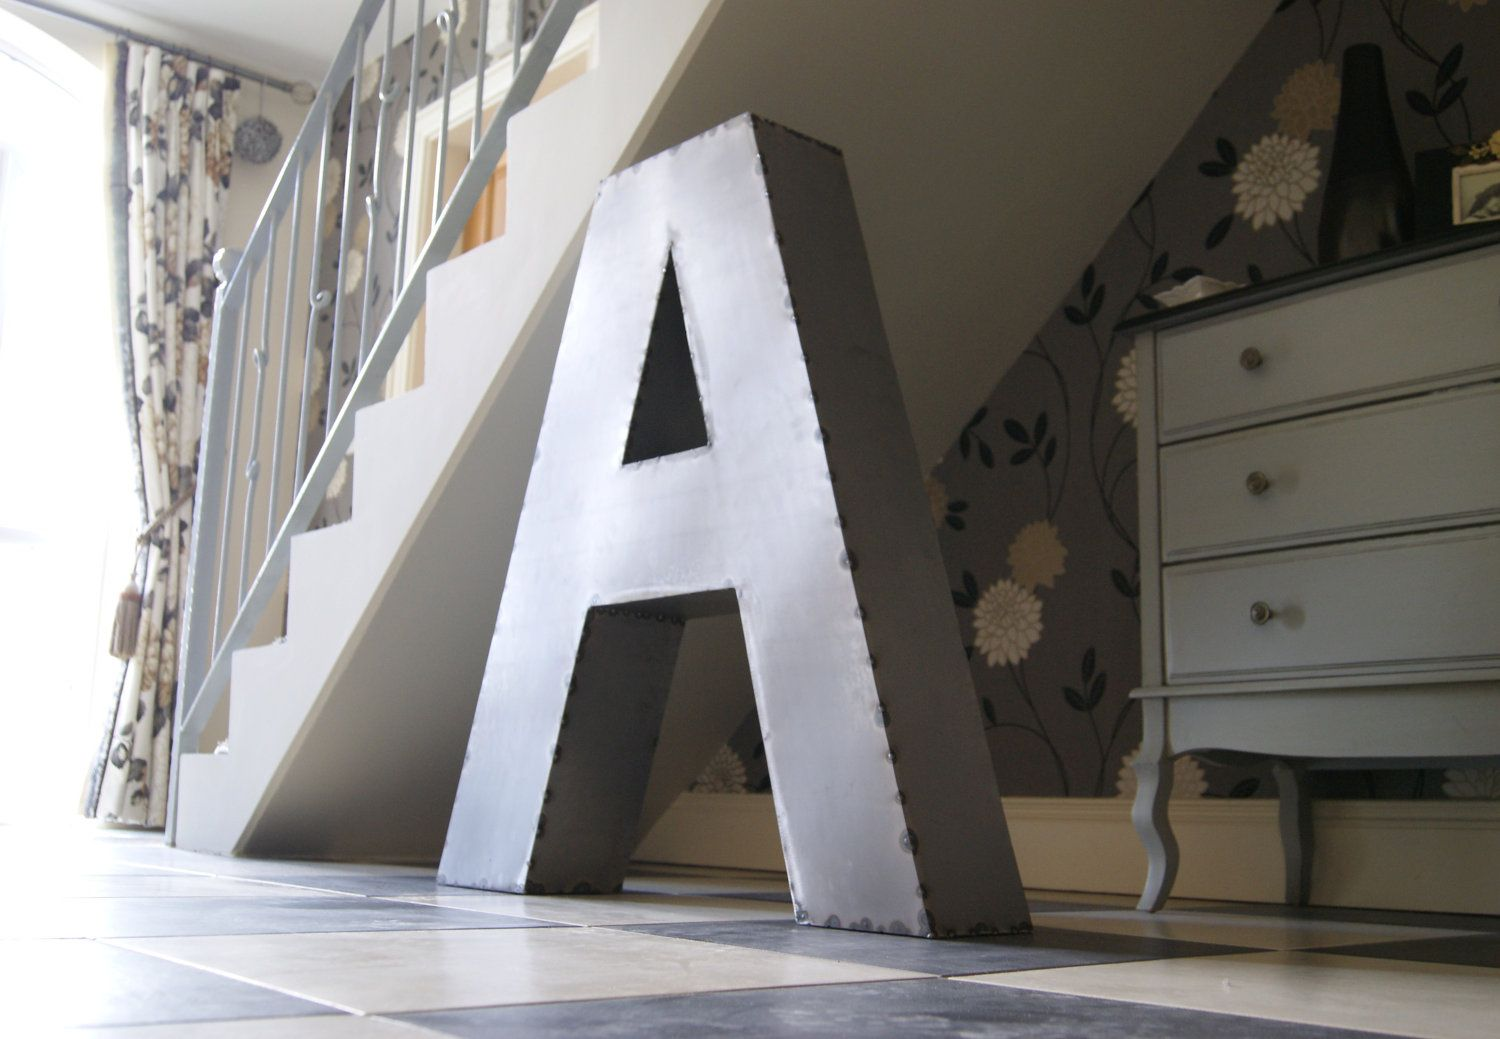 Giant Metal Letters By Joseph Mccaughern 249 99 Via Etsy These Serve No Purpose But I Love Them Anyway Metal Letters Design Big Girl Rooms